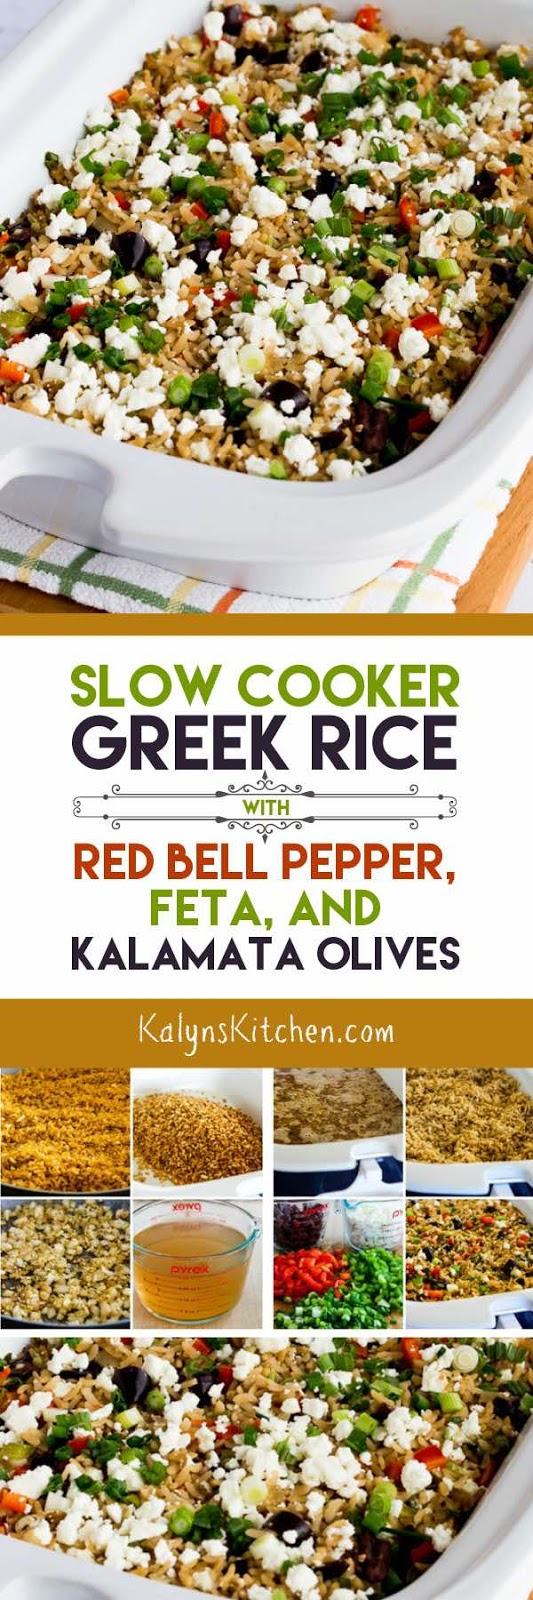 Kalyn's Kitchen�: Slow Cooker Greek Rice With Red Bell Pepper, Feta, And